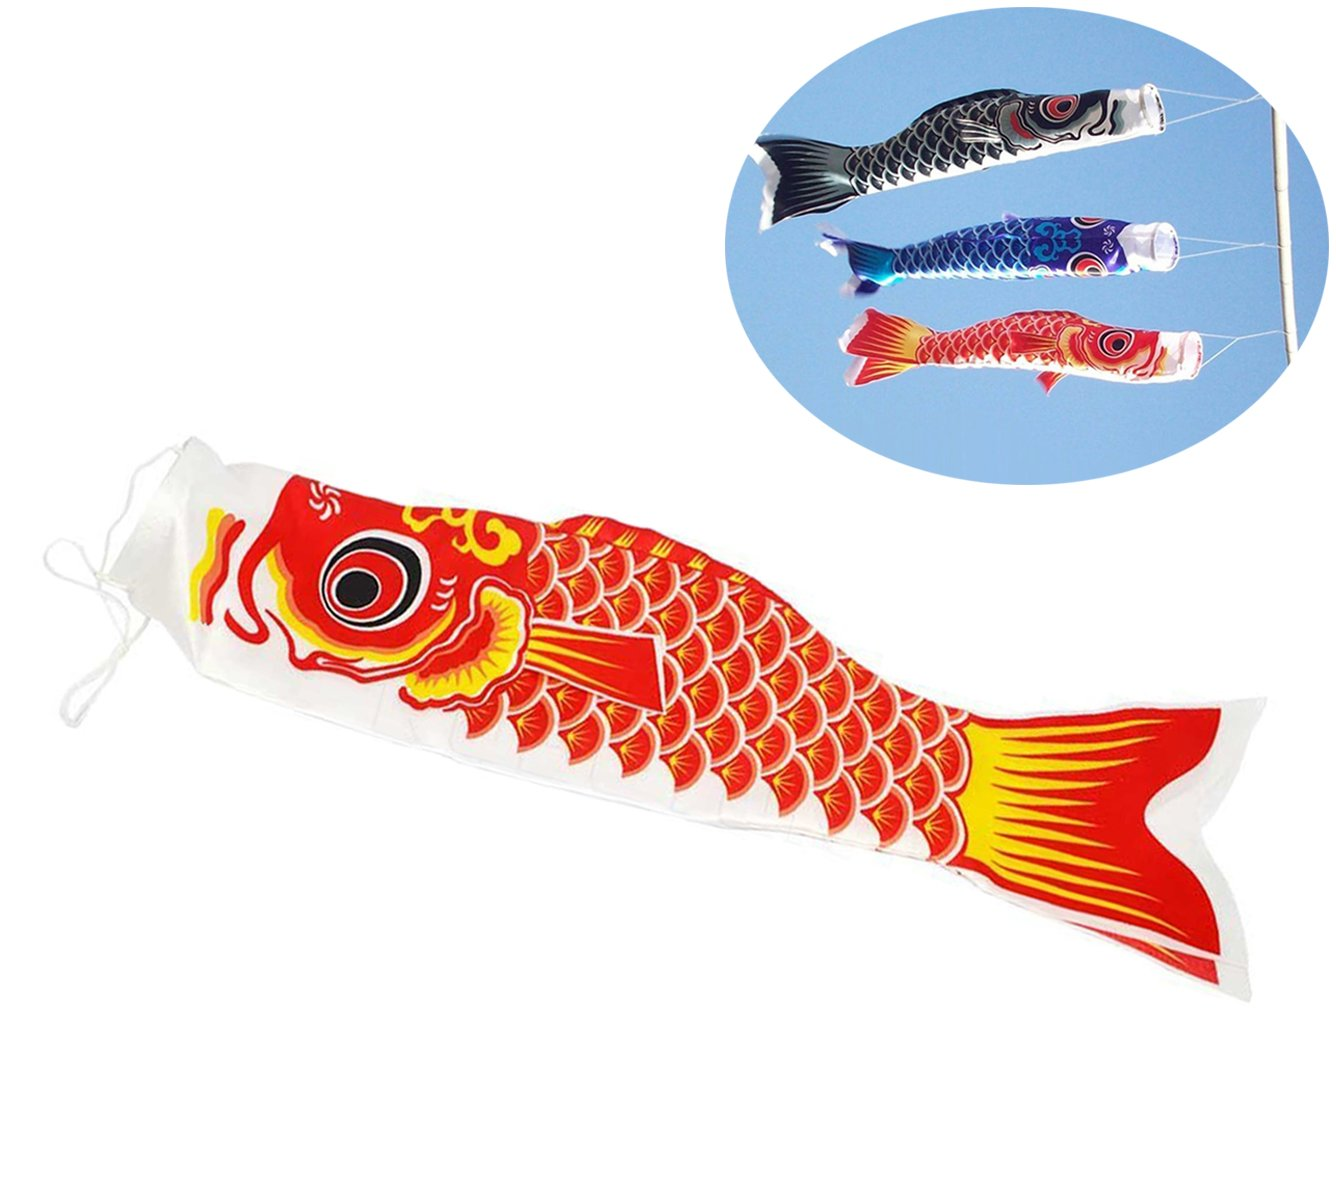 Chytaii Japanese Windsock Carp Flag Carp Windsock Carp Fish Wind Streamer Koinobori 70cm/28inch (Black)